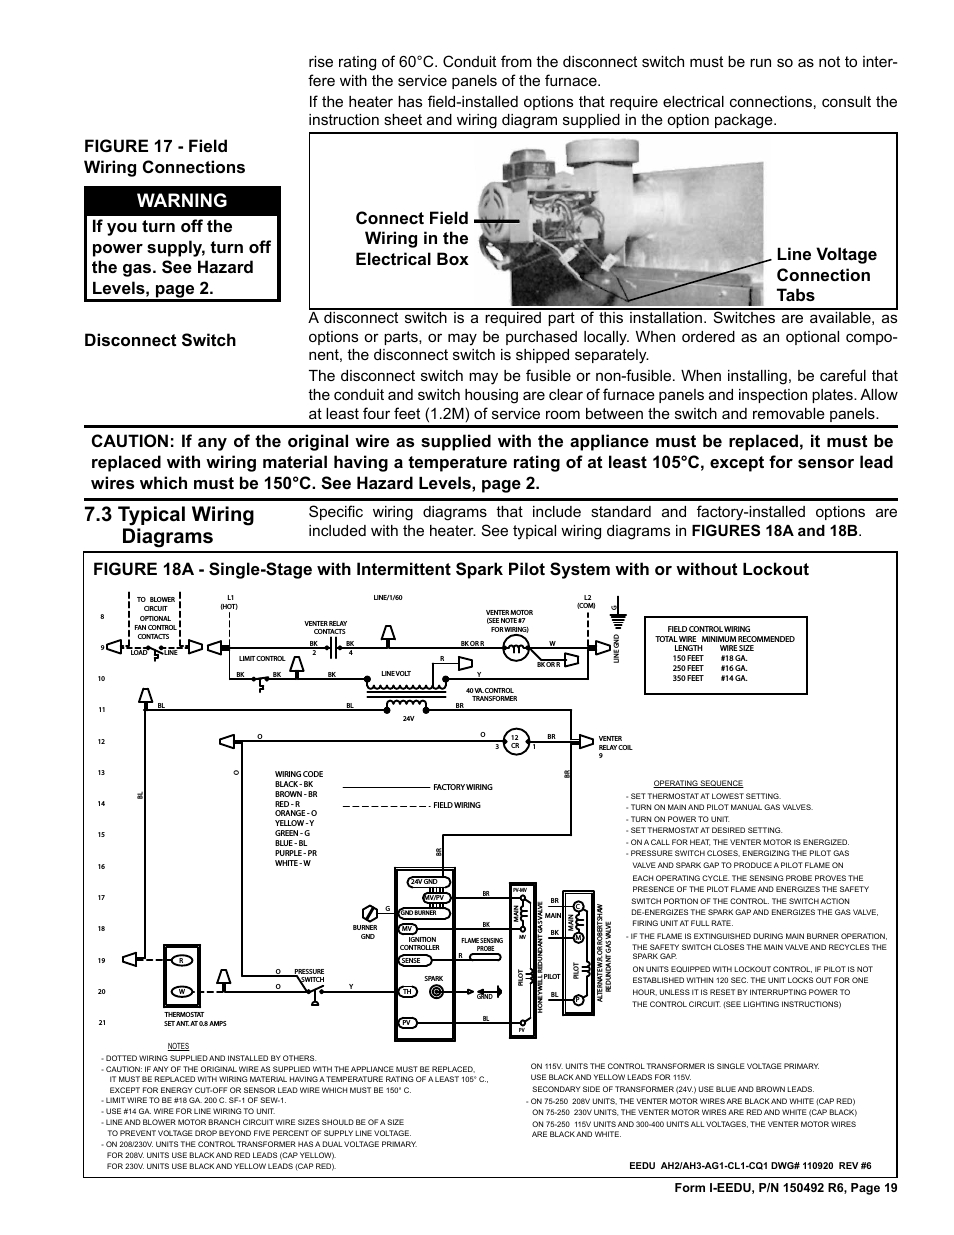 Reznor Heater Wiring Diagram | Manual E-Books - Reznor Heater Wiring Diagram